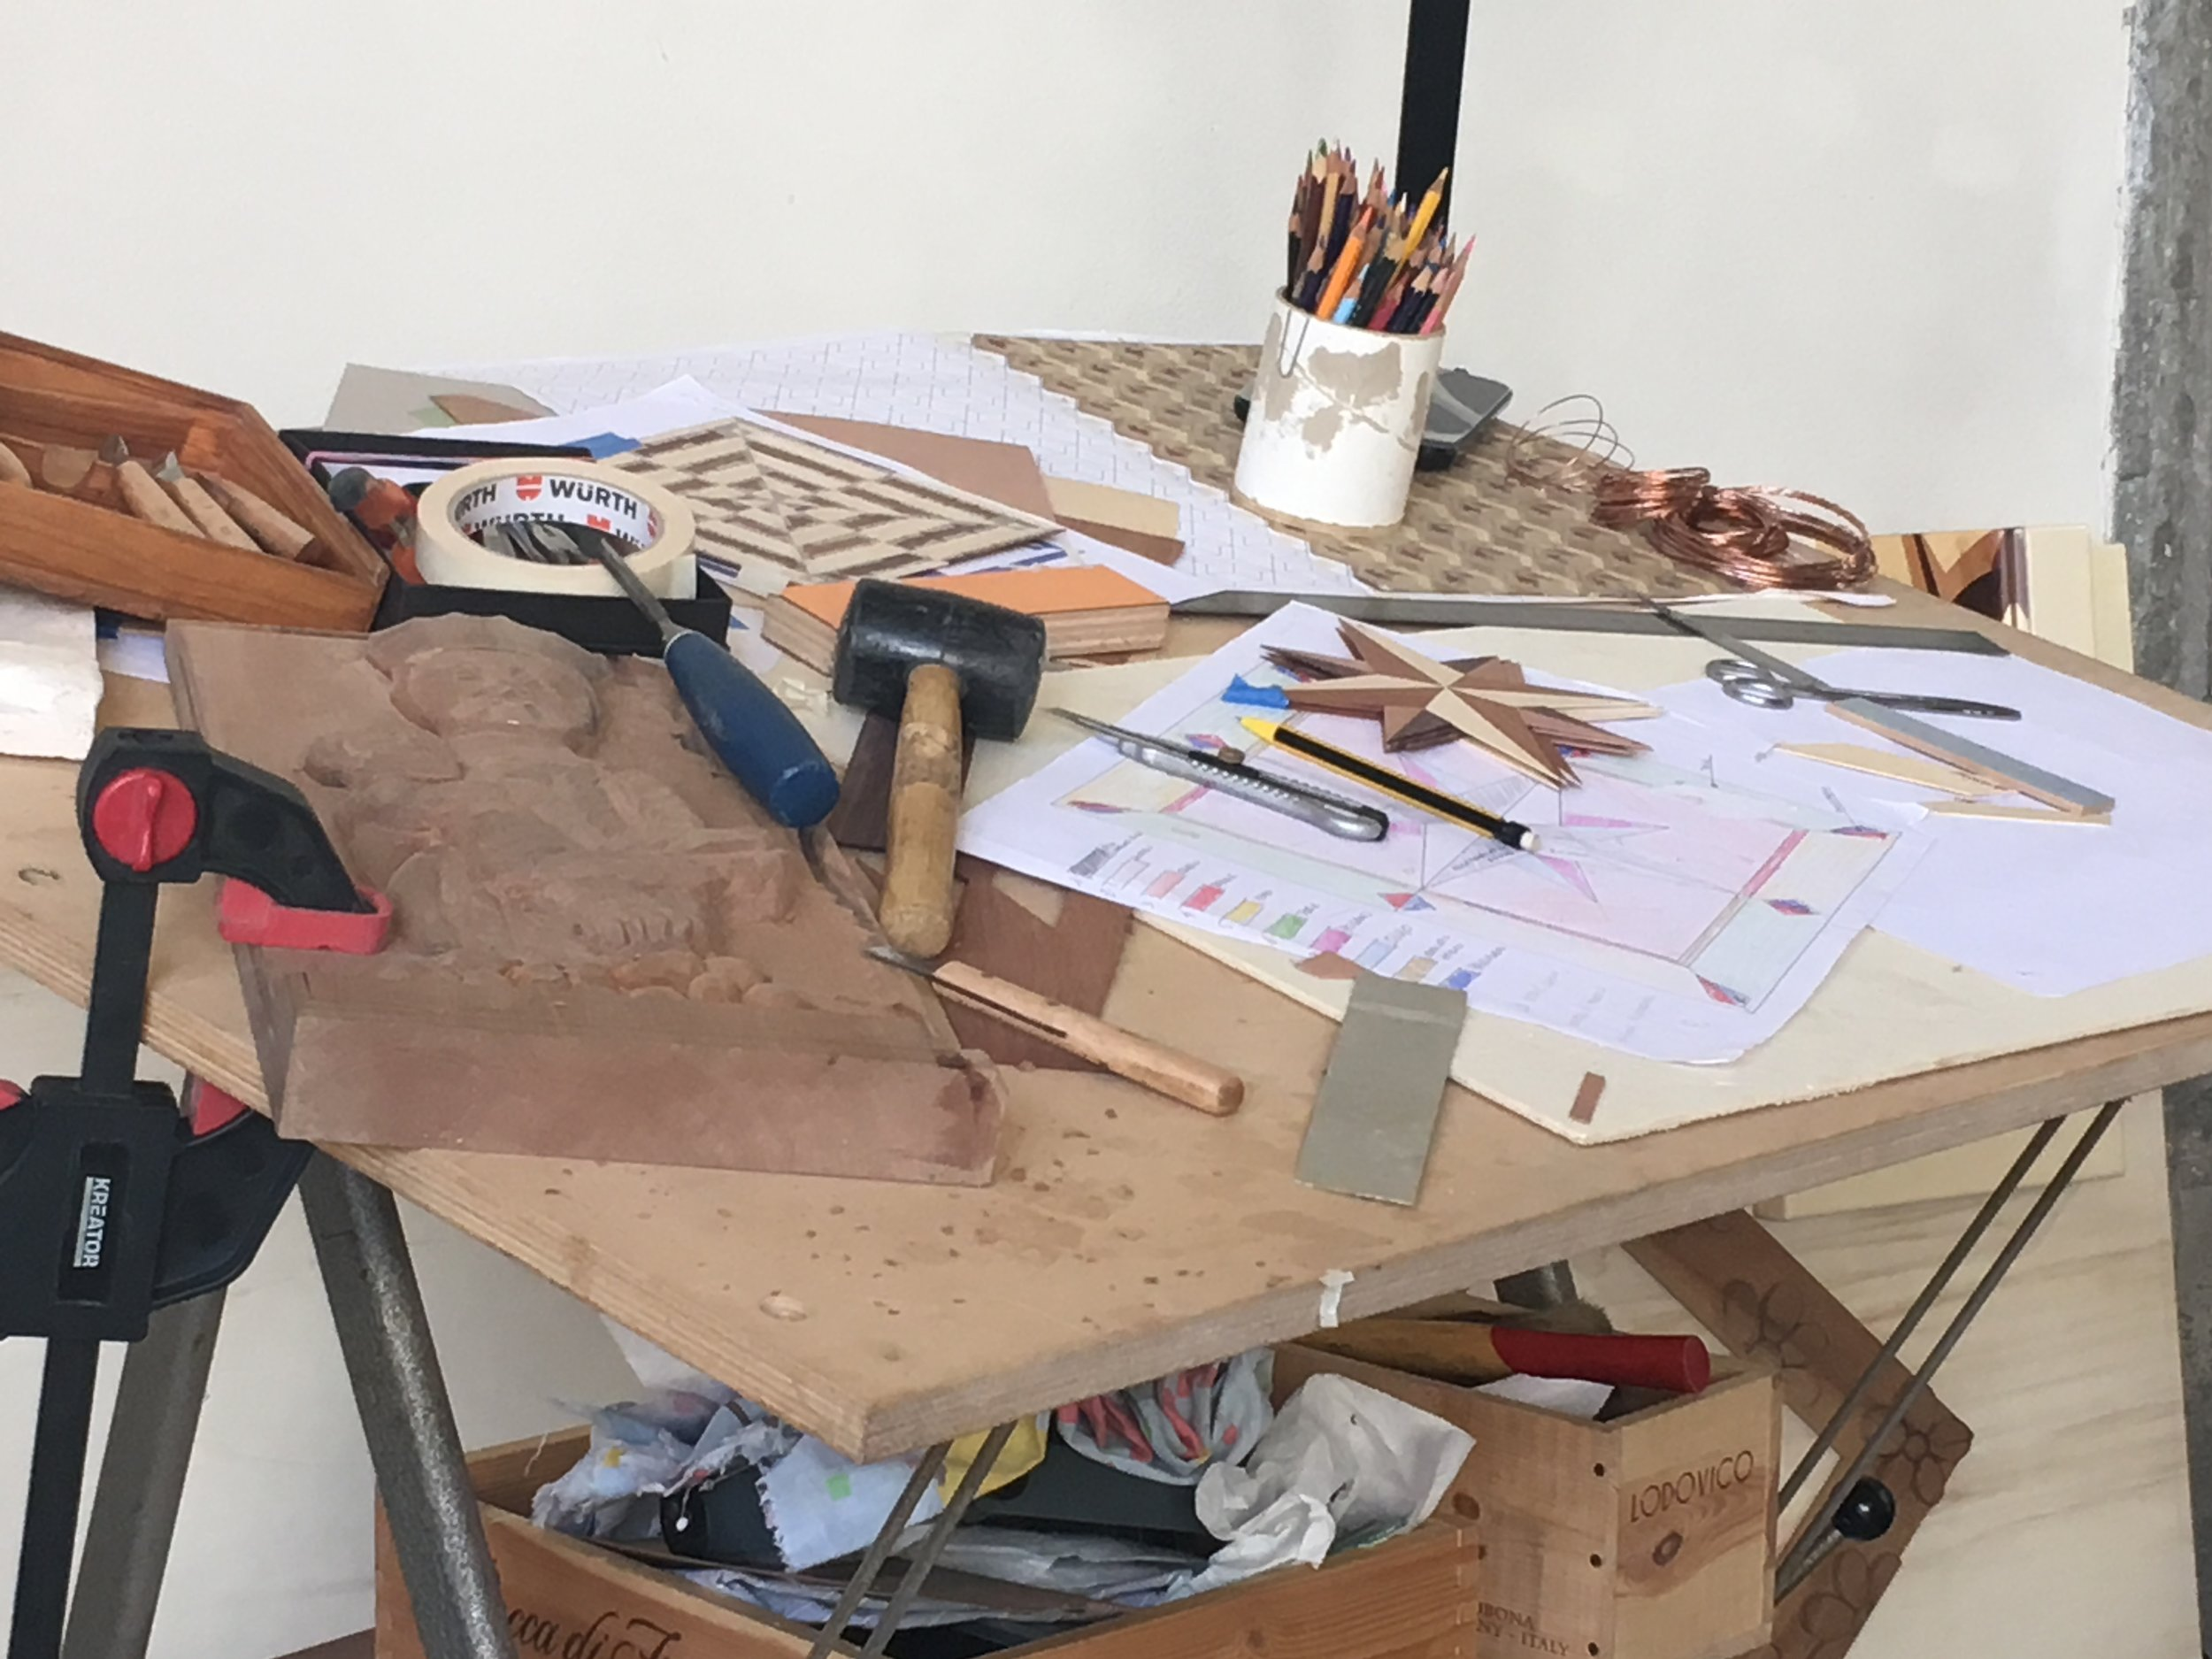 A woodworkers bench